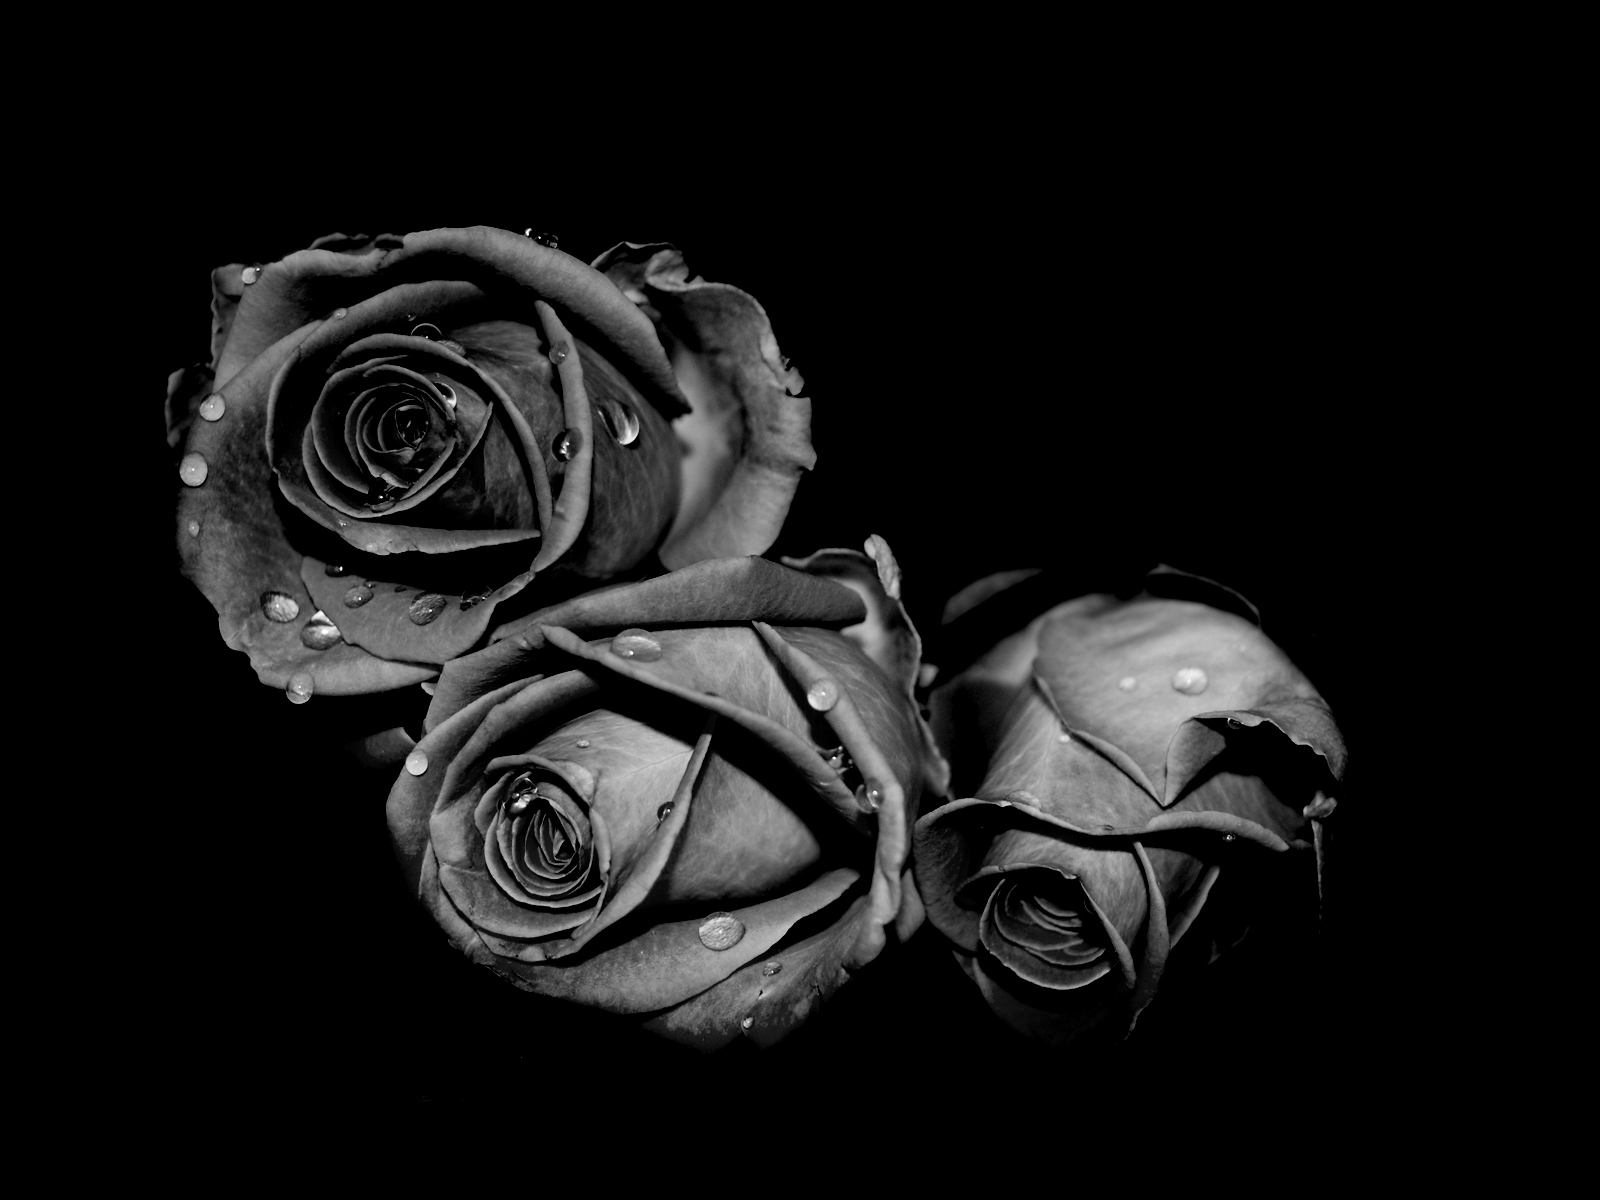 Three Black Rose Flowers Wallpaper Desktop